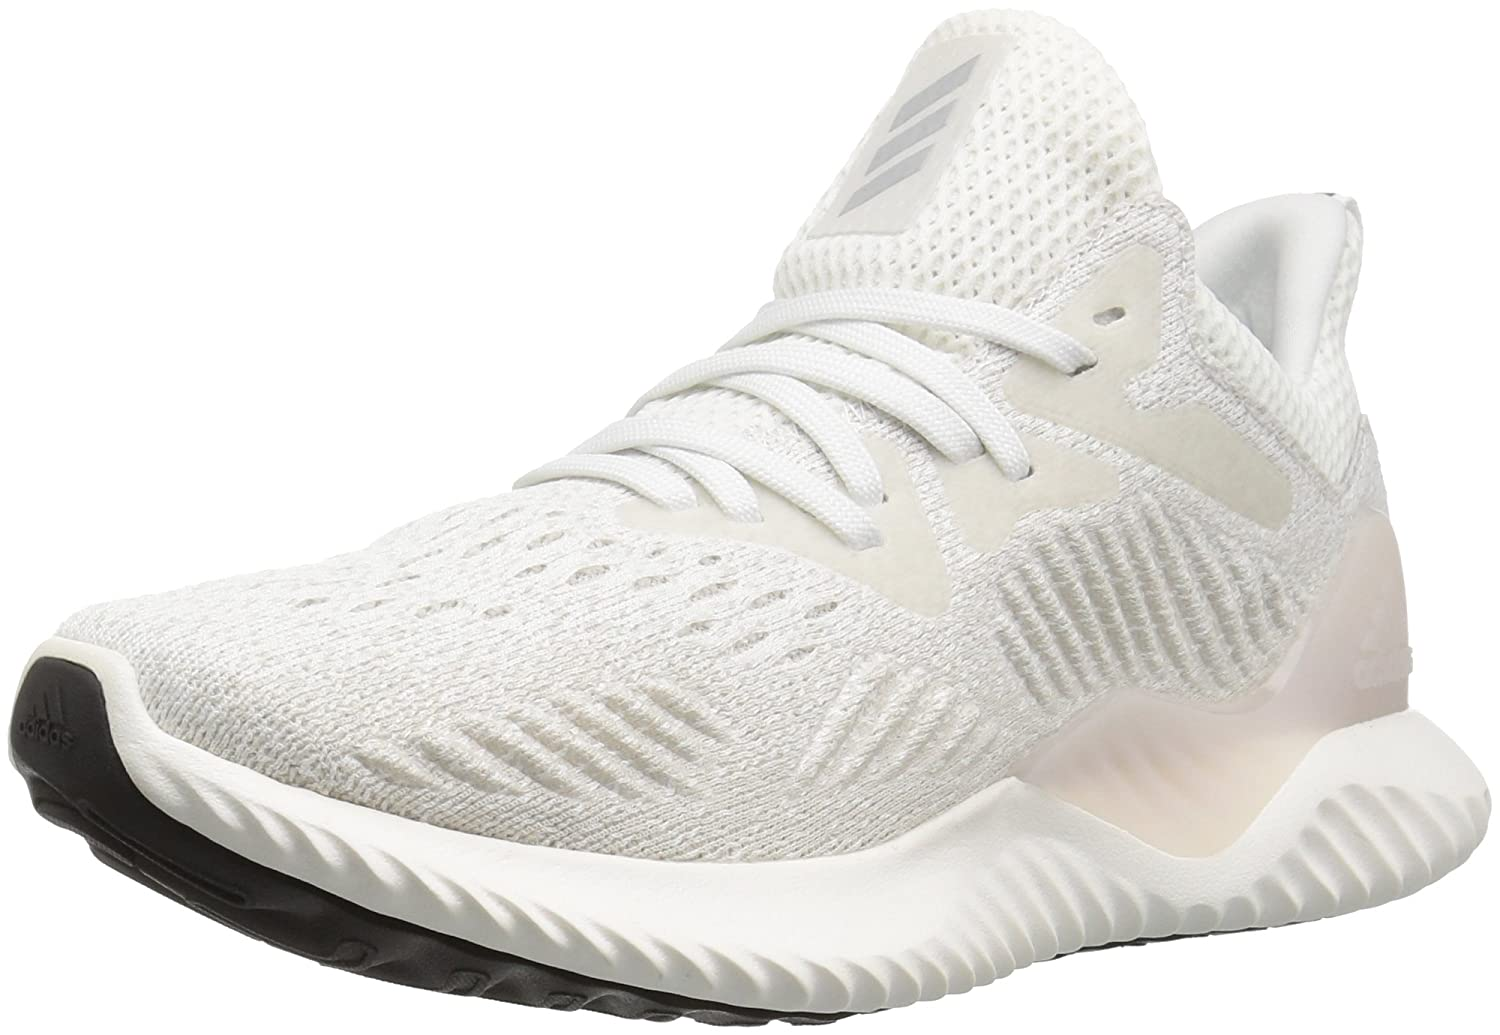 adidas Women's Alphabounce Beyond B(M) Running Shoe B077XKPTXZ 9 B(M) Beyond US|White/Grey/Grey 922624